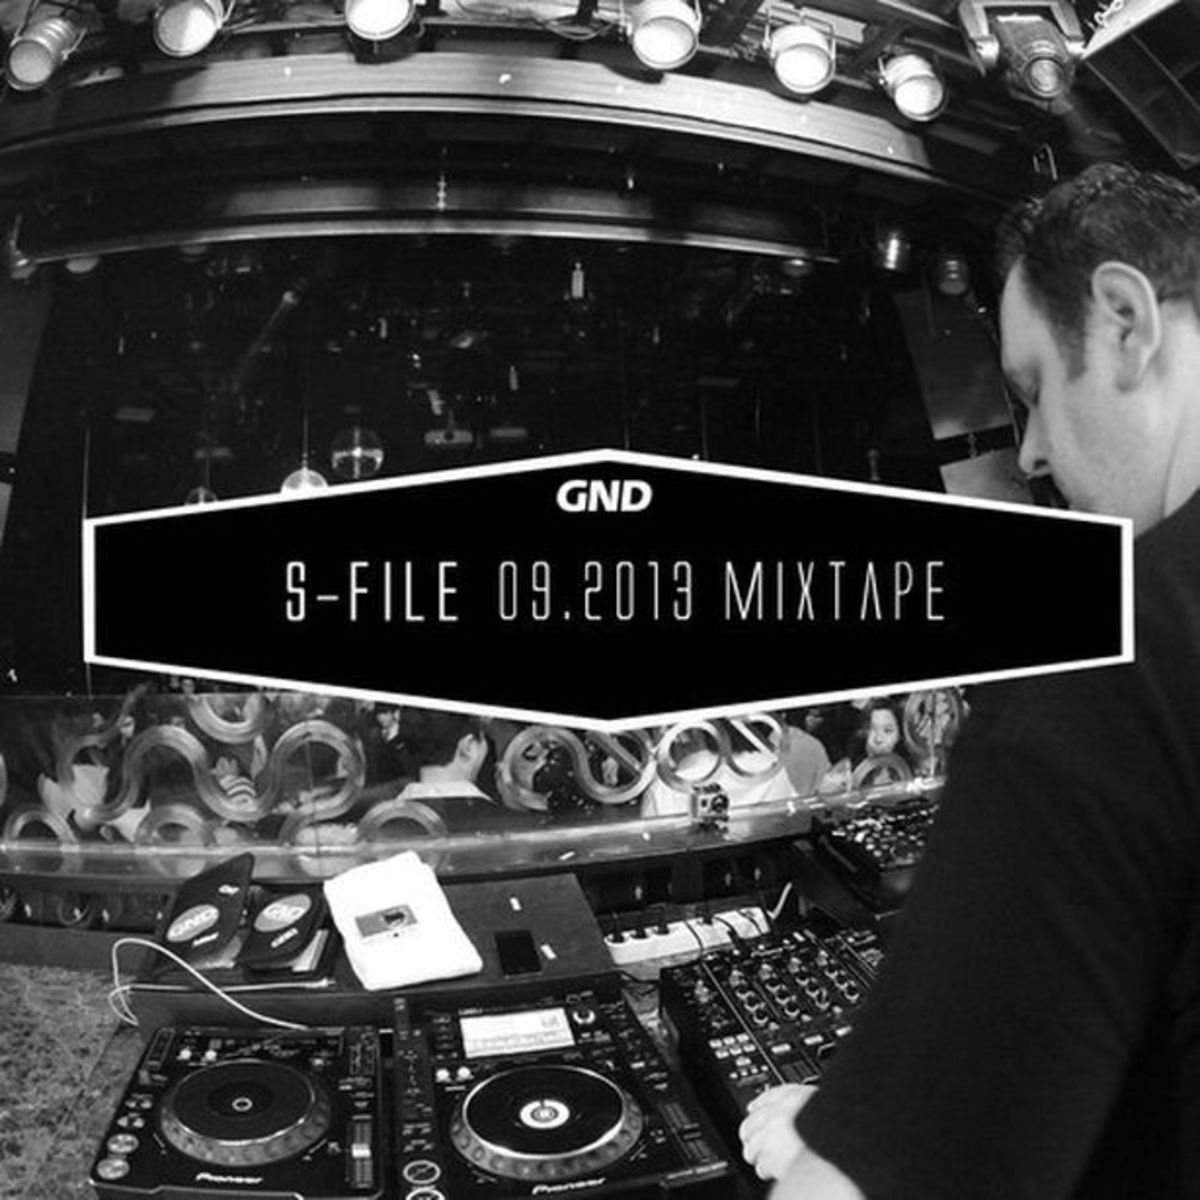 EDM Download: S-File Shares His September 2013 Mixtape